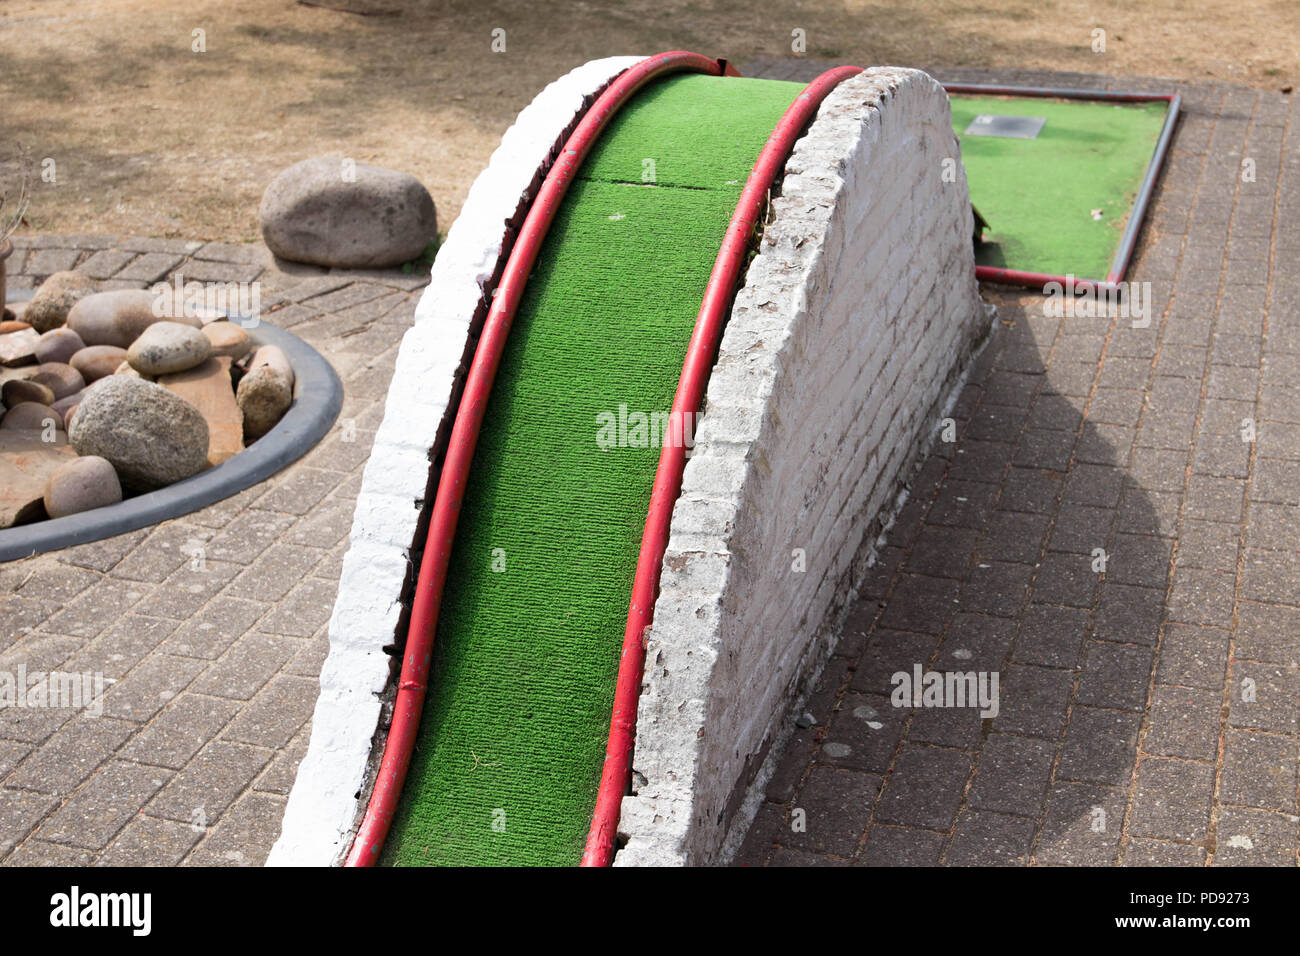 Mini golf green obstacle hole - Stock Image